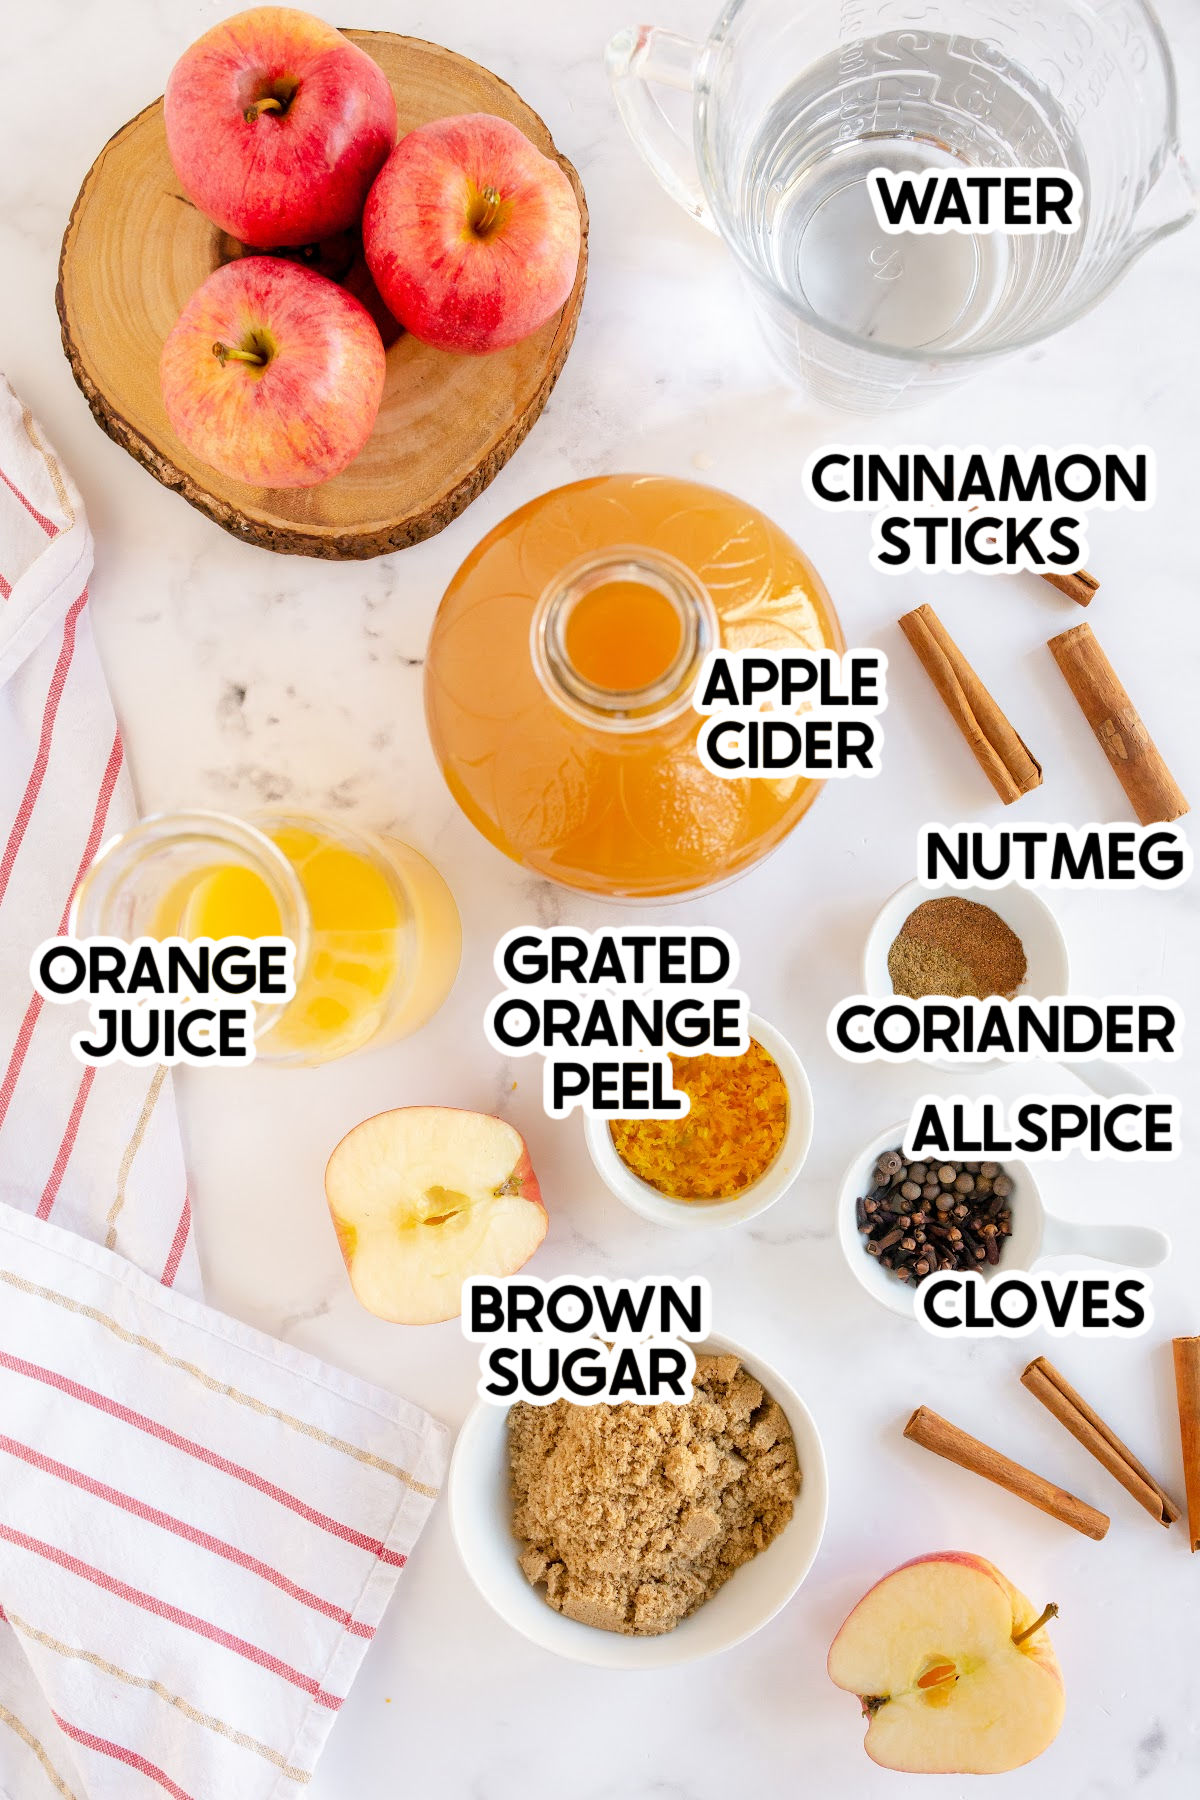 spiced apple cider ingredients with labels